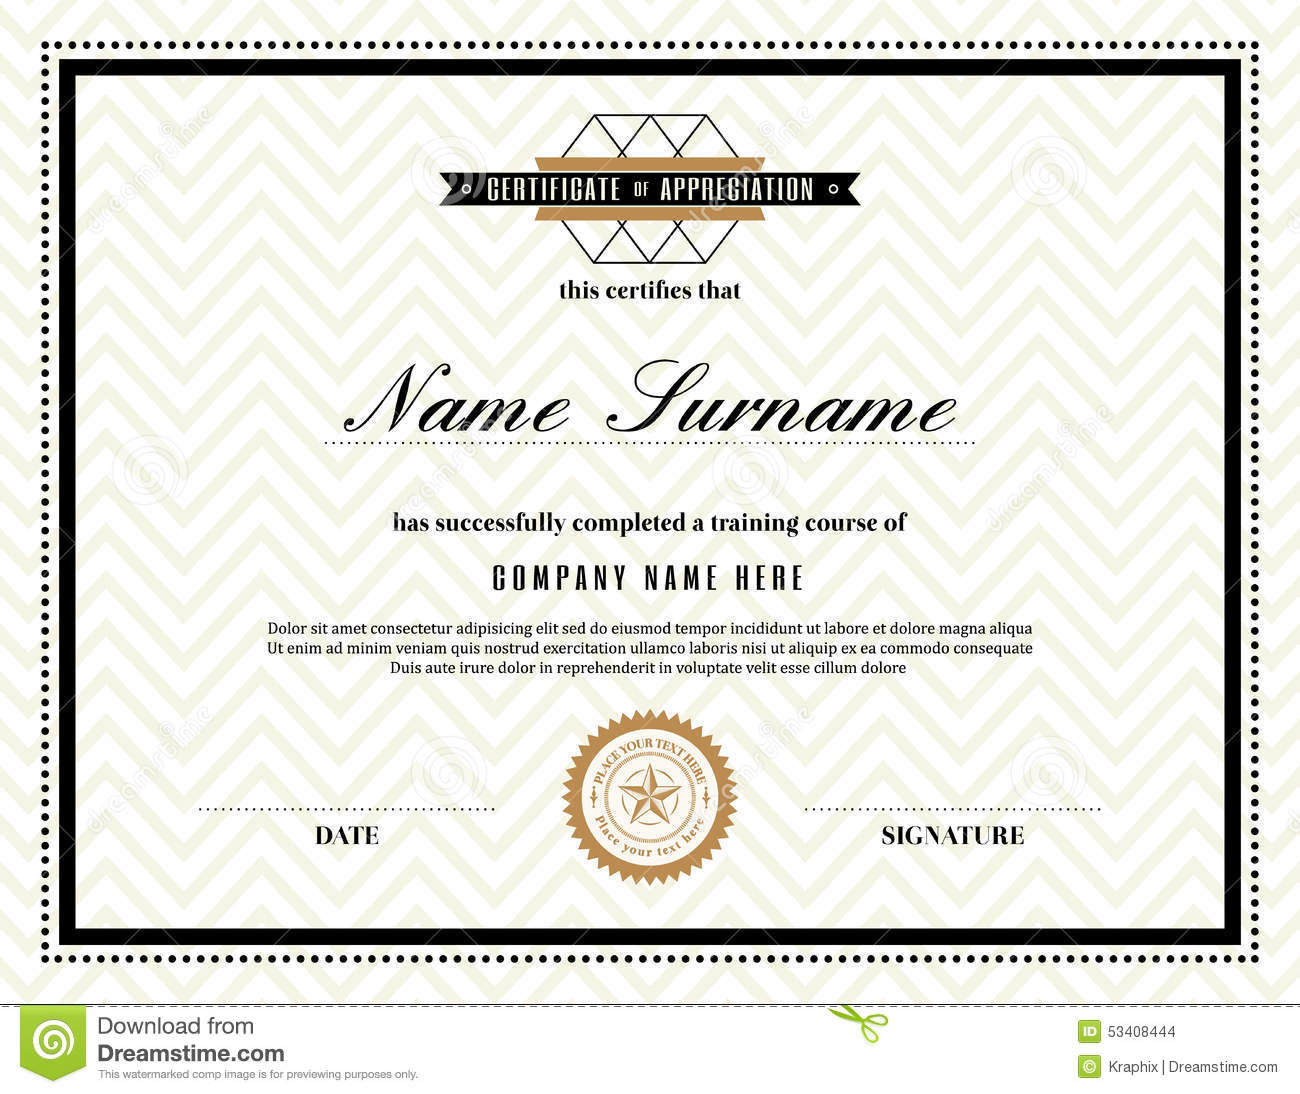 Retro frame certificate of appreciation template stock vector retro frame certificate of appreciation template royalty free vector yelopaper